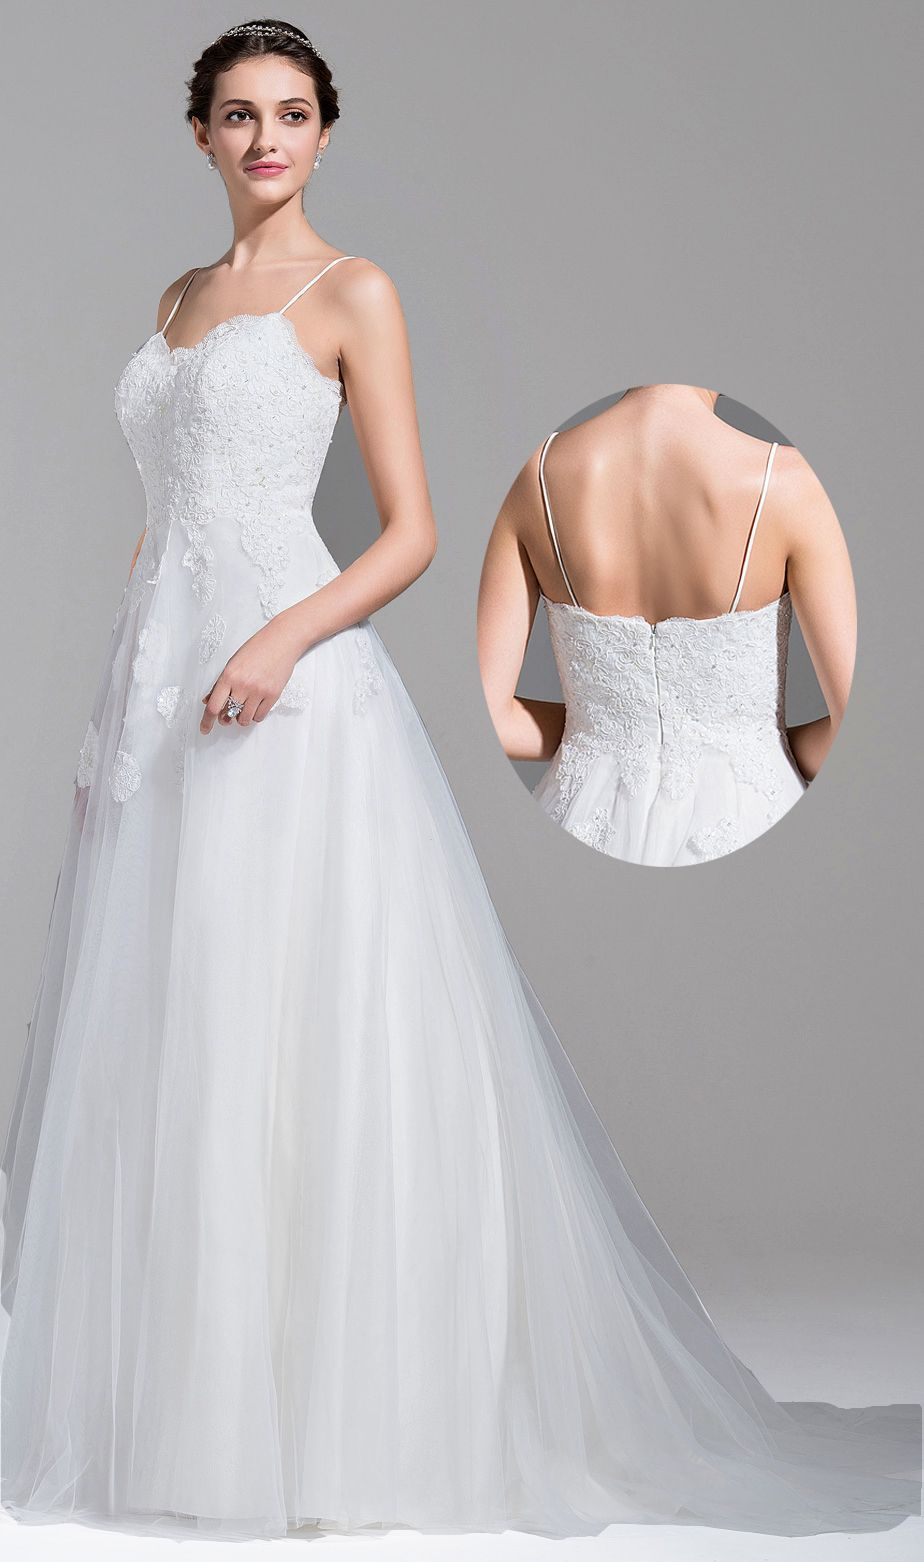 43++ Sweetheart wedding dress with straps information